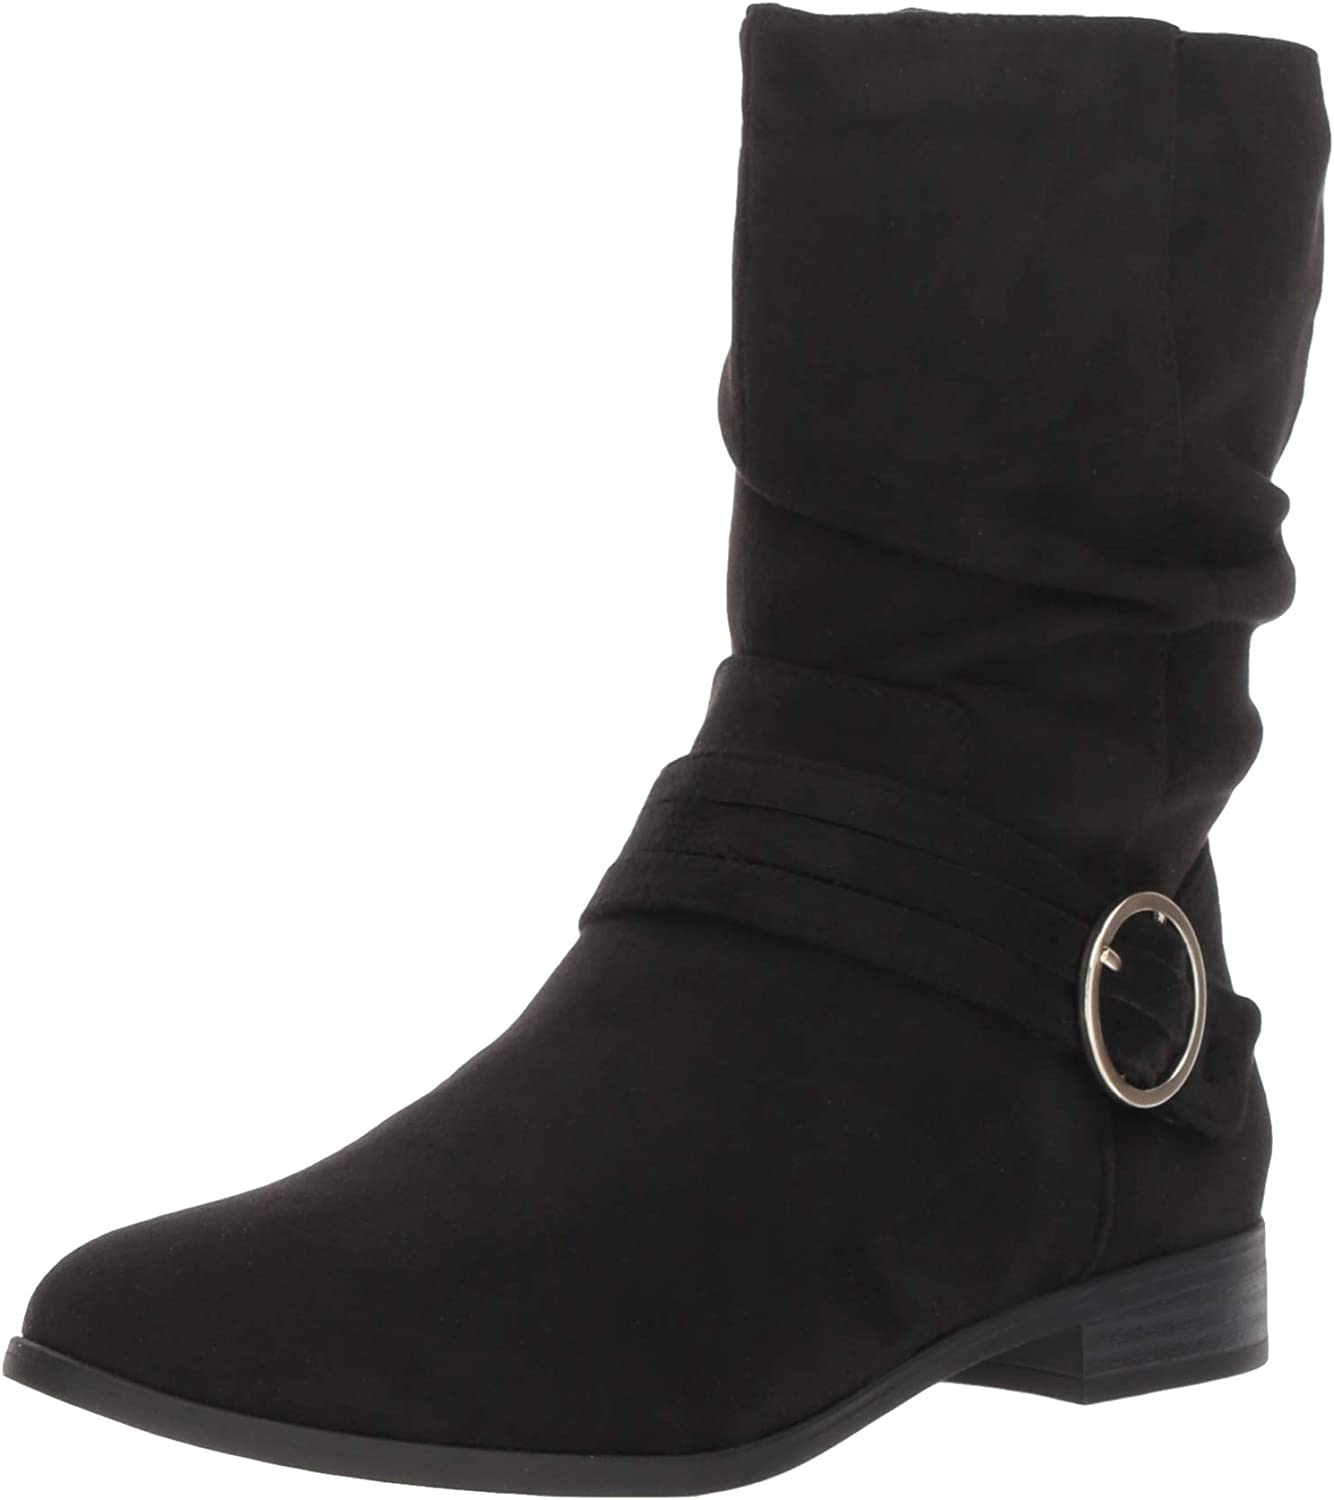 Dr. Scholl's Shoes Women's Ripple Mid Calf Boot